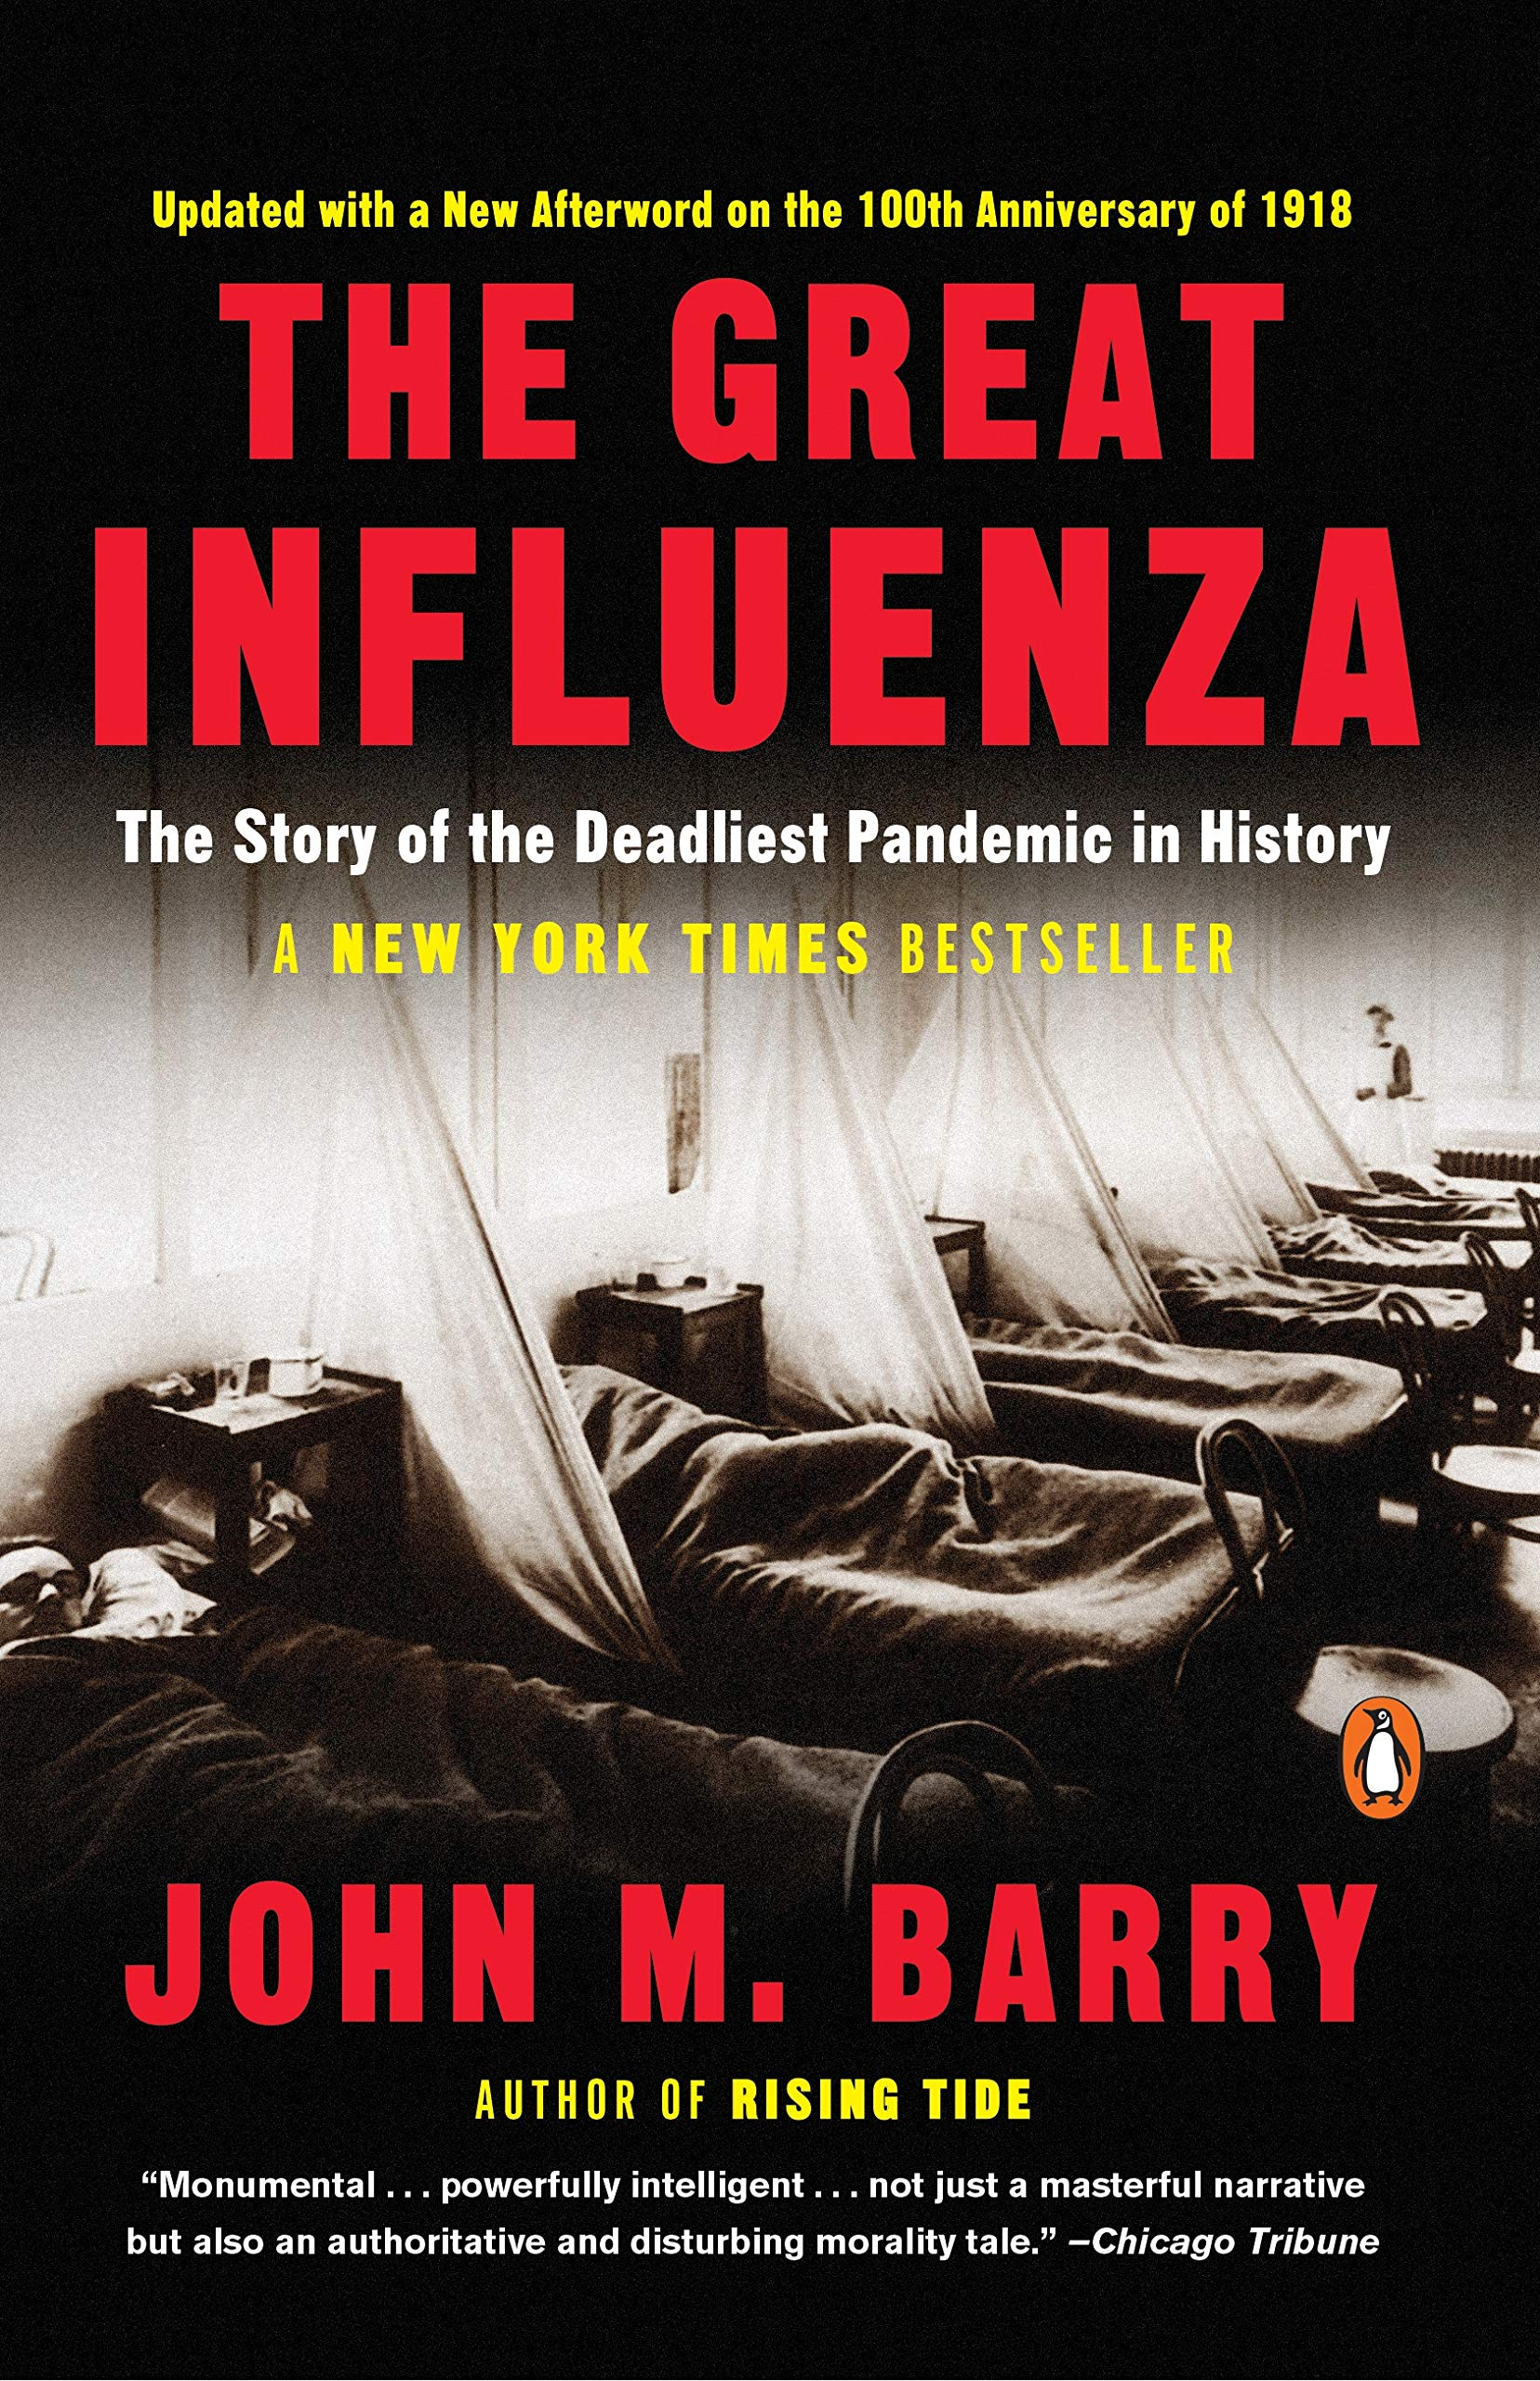 91LgM7DFHlL - The Great Influenza: The Story of the Deadliest Pandemic in History